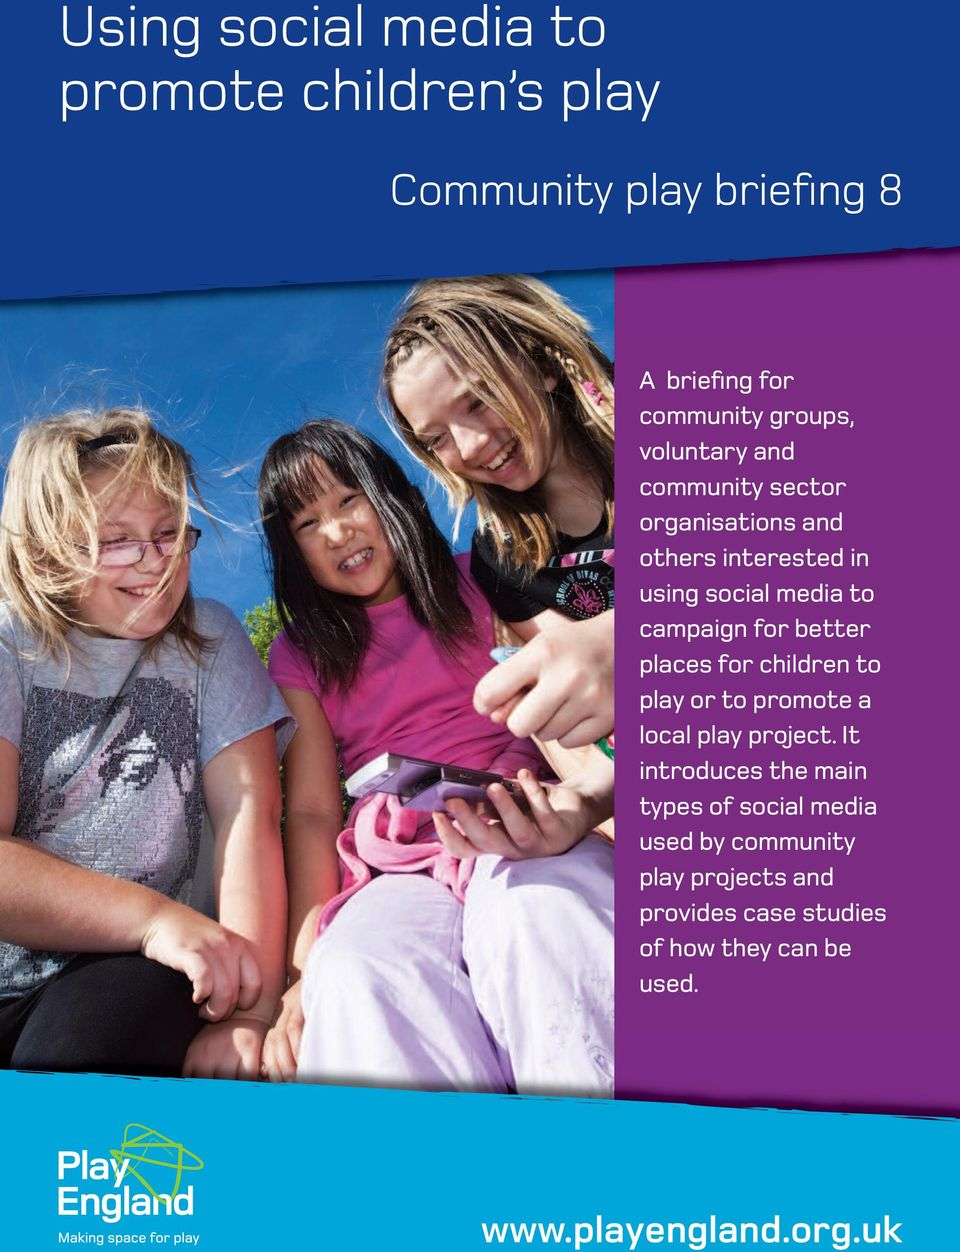 better places for children to play or to promote a local play project.